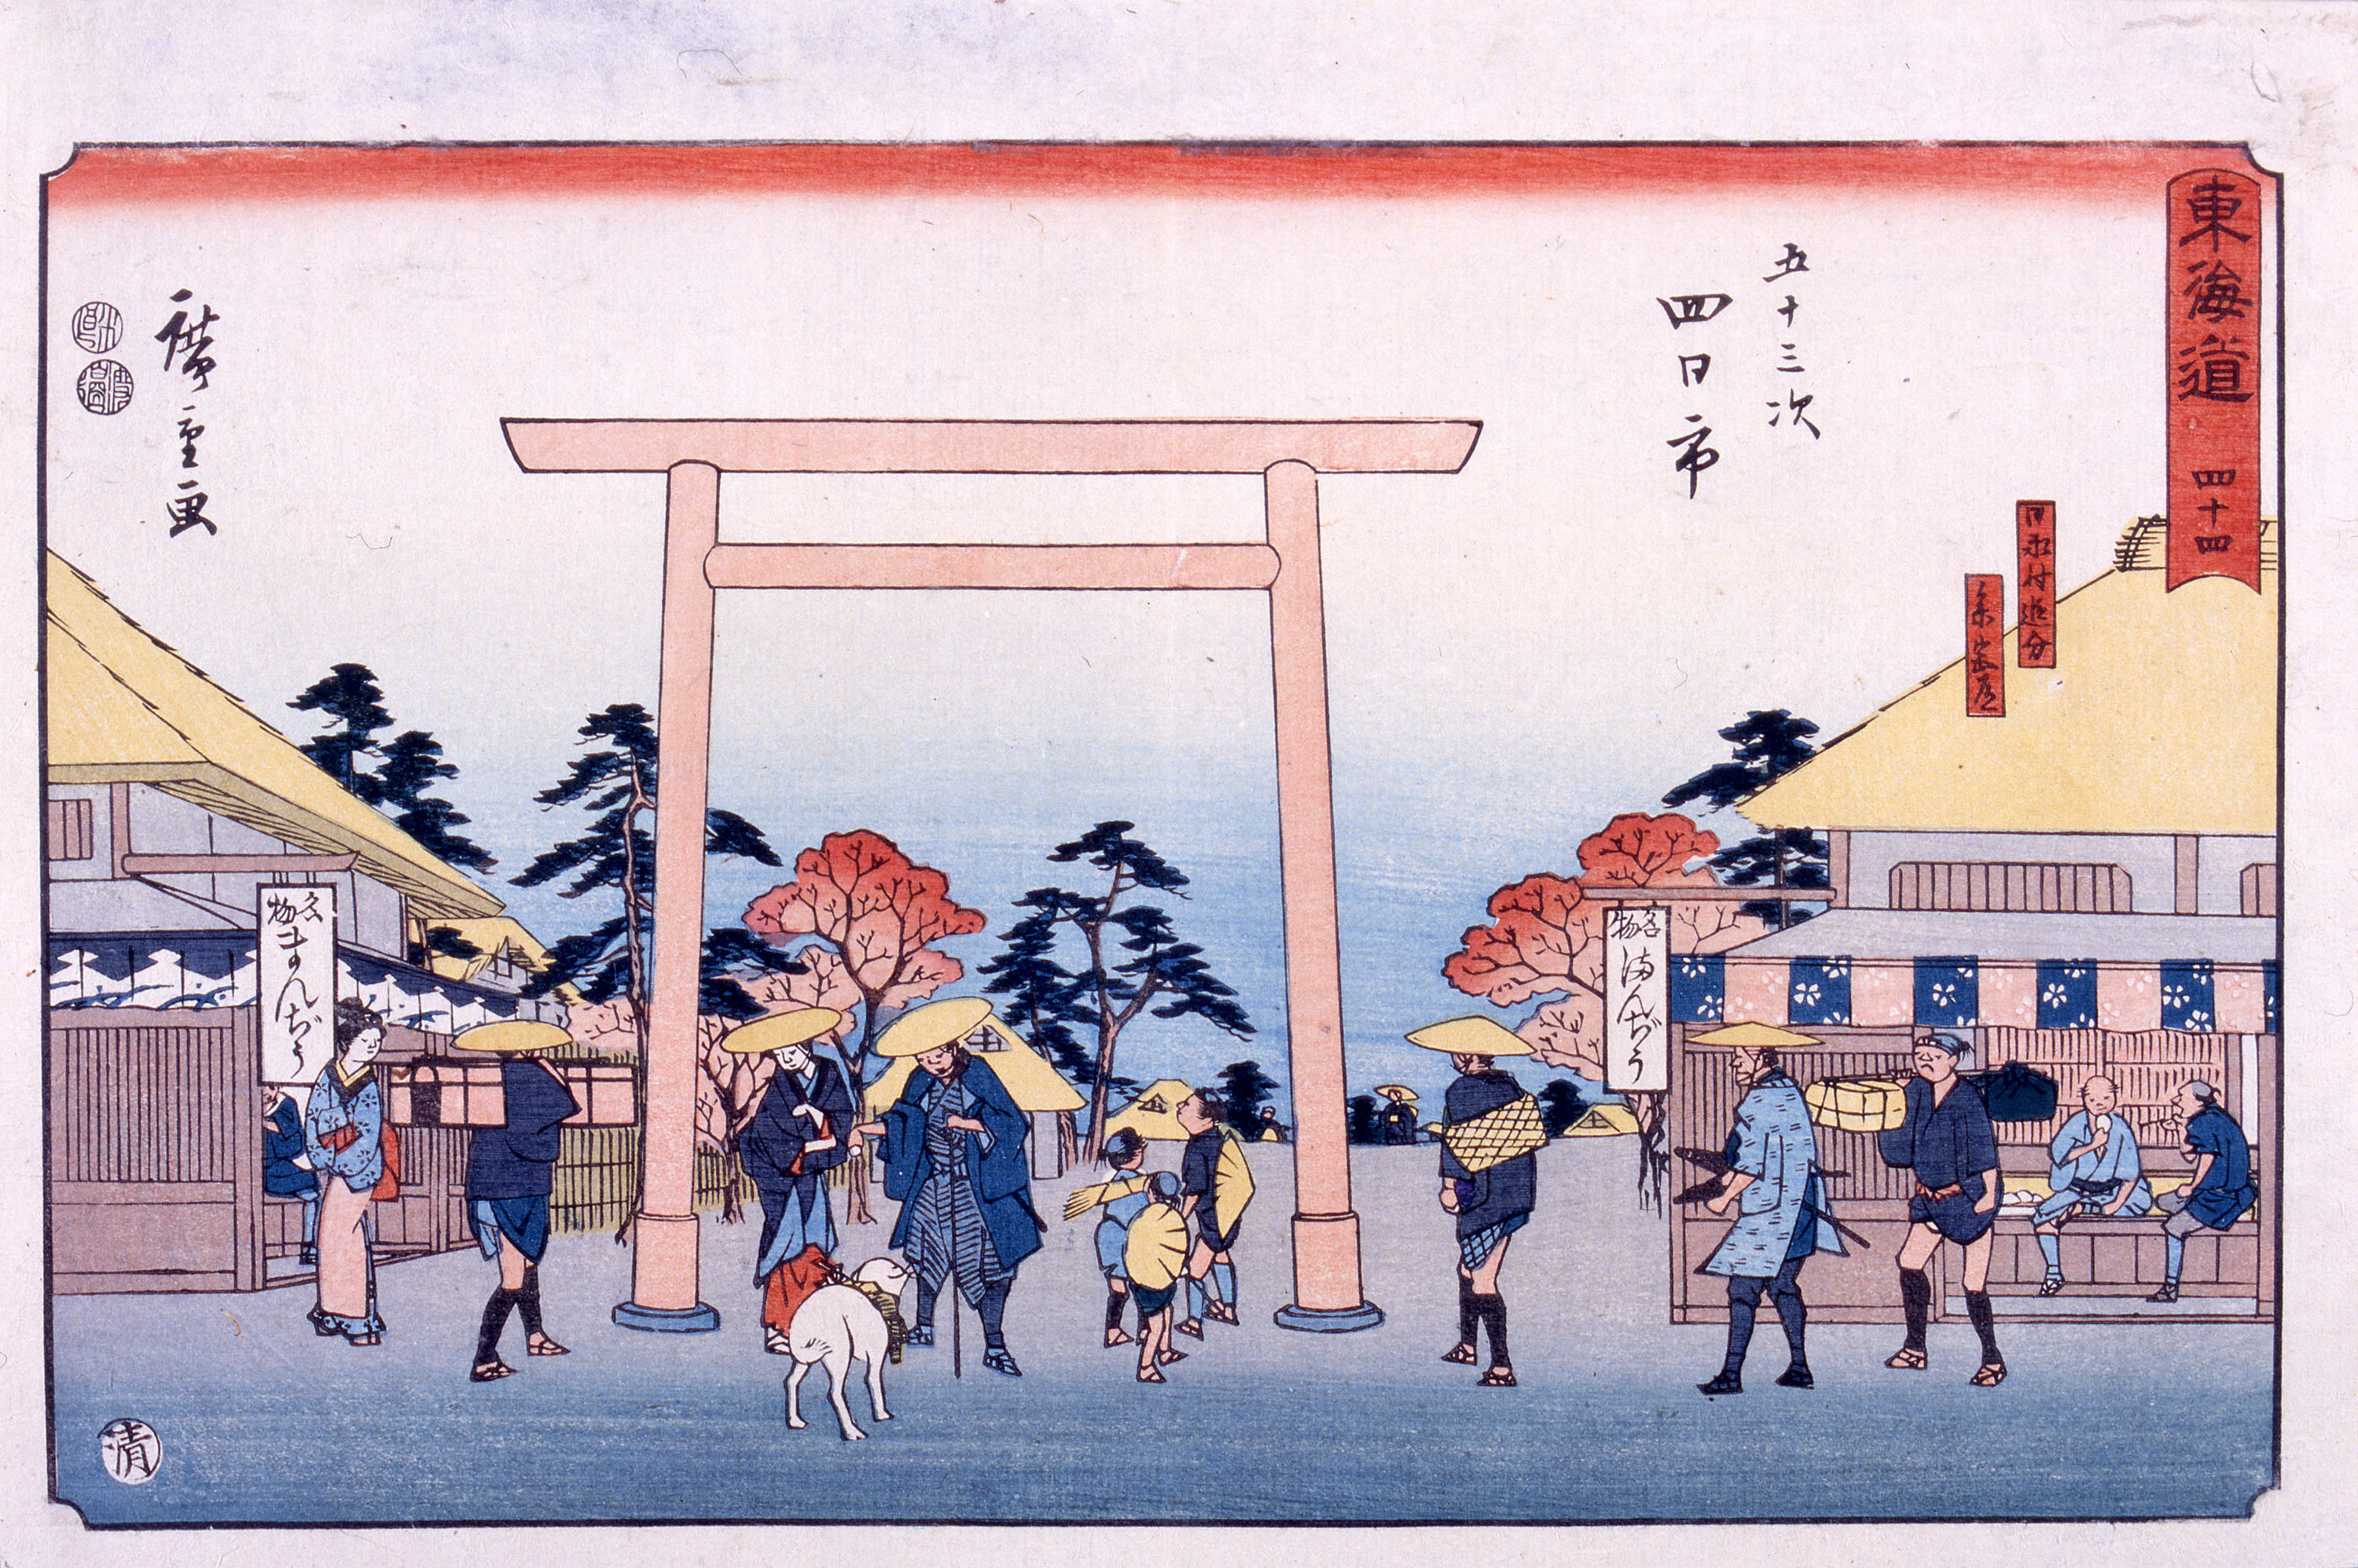 'Yokkaichi,' from the 'Fifty-three Stations of the Tokaido,' Reisho Edition, by Utagawa Hiroshige (1848-1854). | SUNTORY MUSEUM OF ART